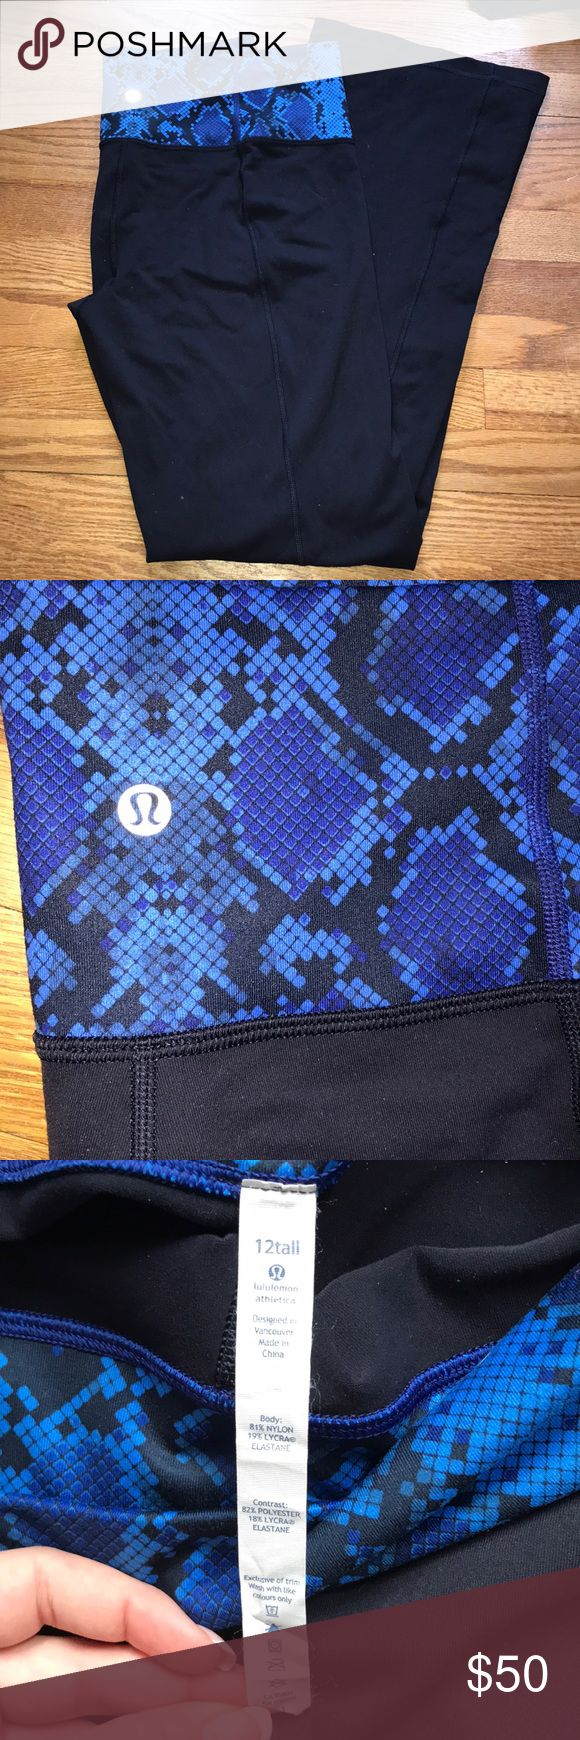 Lululemon Navy snake skin yoga pants 12 tall EUC. Only worn a couple times. Navy and royal blue snake skin lululemon yoga pants. Size 12 tall. I think they run a bit big. They are the regular style wider bottom yoga pant. They are navy not black and have the colored waist band. They are in amazing condition no pilling or holes anywhere. Perfect for tall girls! lululemon athletica Pants Track Pants & Joggers